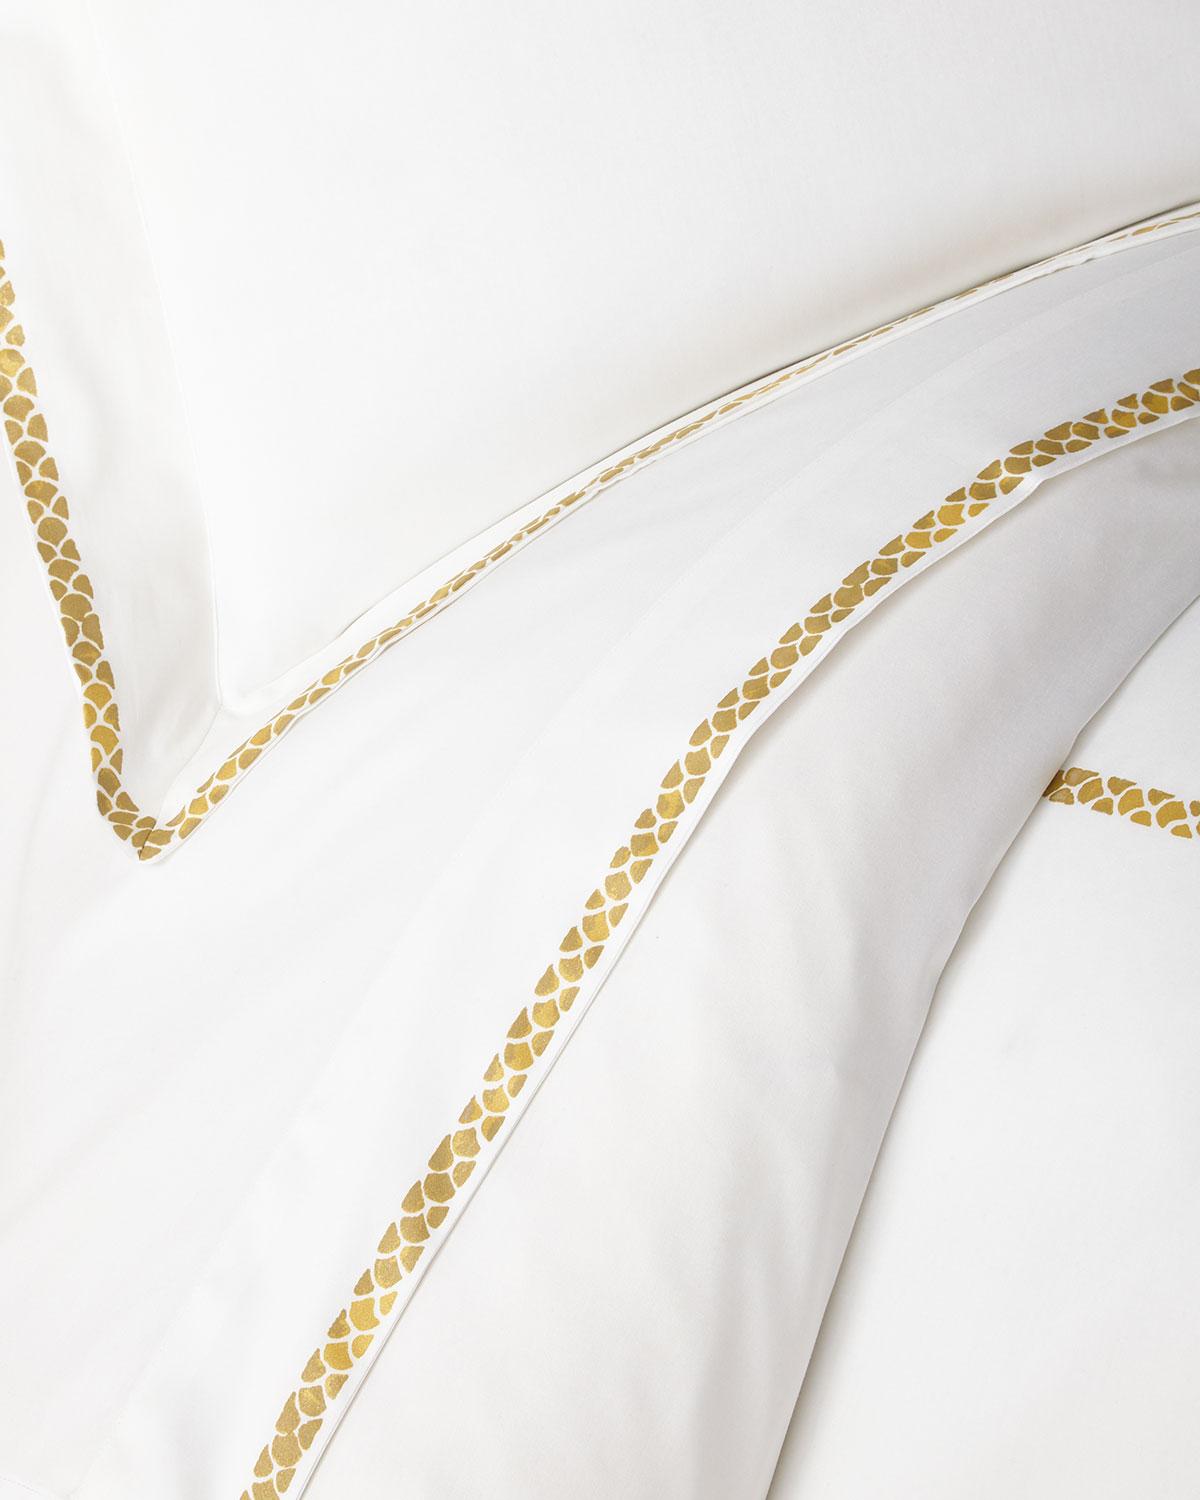 Roberto Cavalli Clothing NEW GOLD QUEEN FLAT SHEET